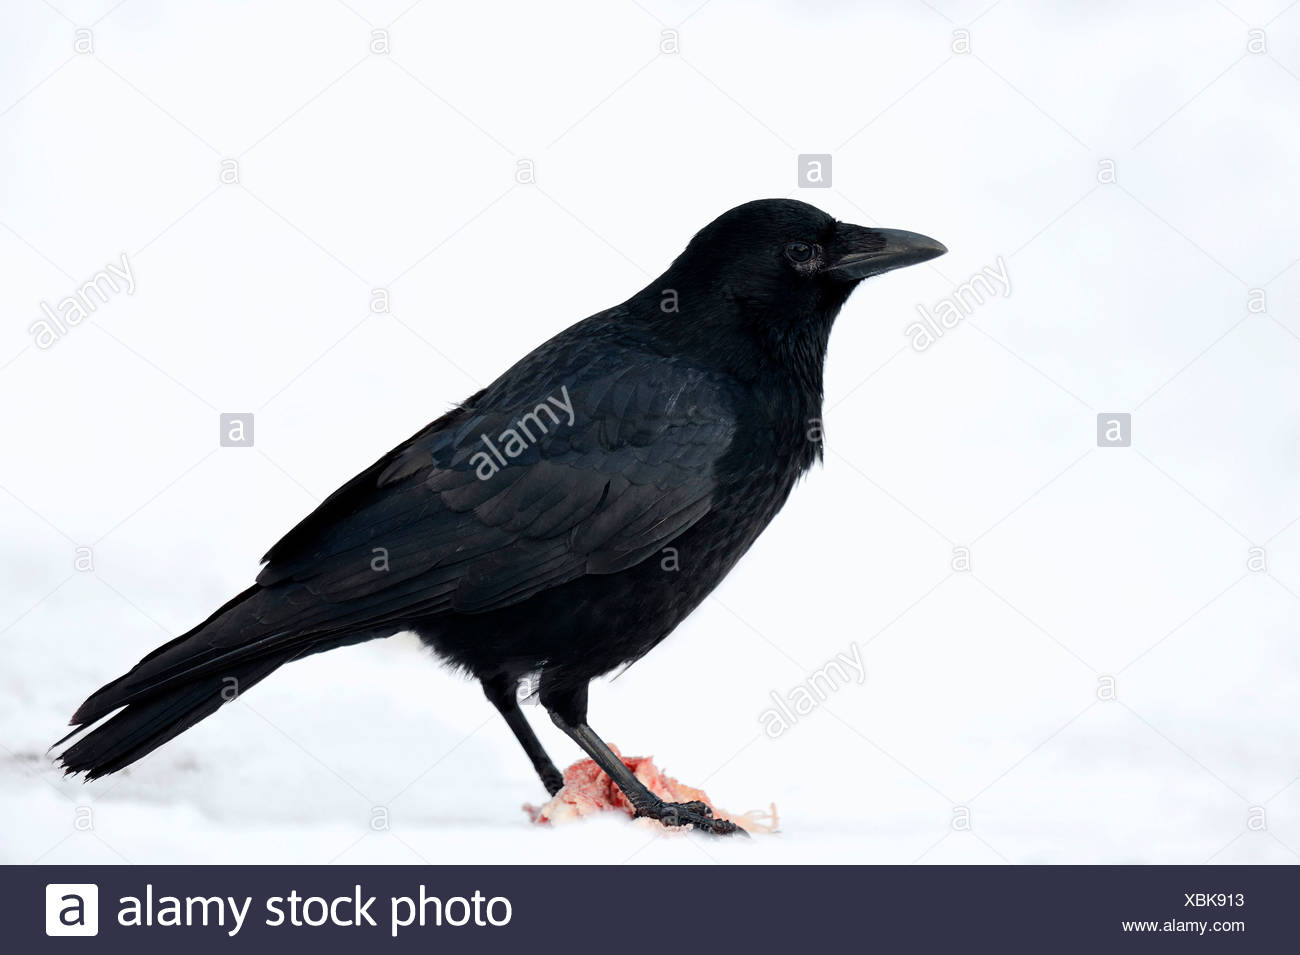 Carrion Crow (Corvus corone corone) scavenging, in winter, North Rhine-Westphalia, Germany - Stock Image